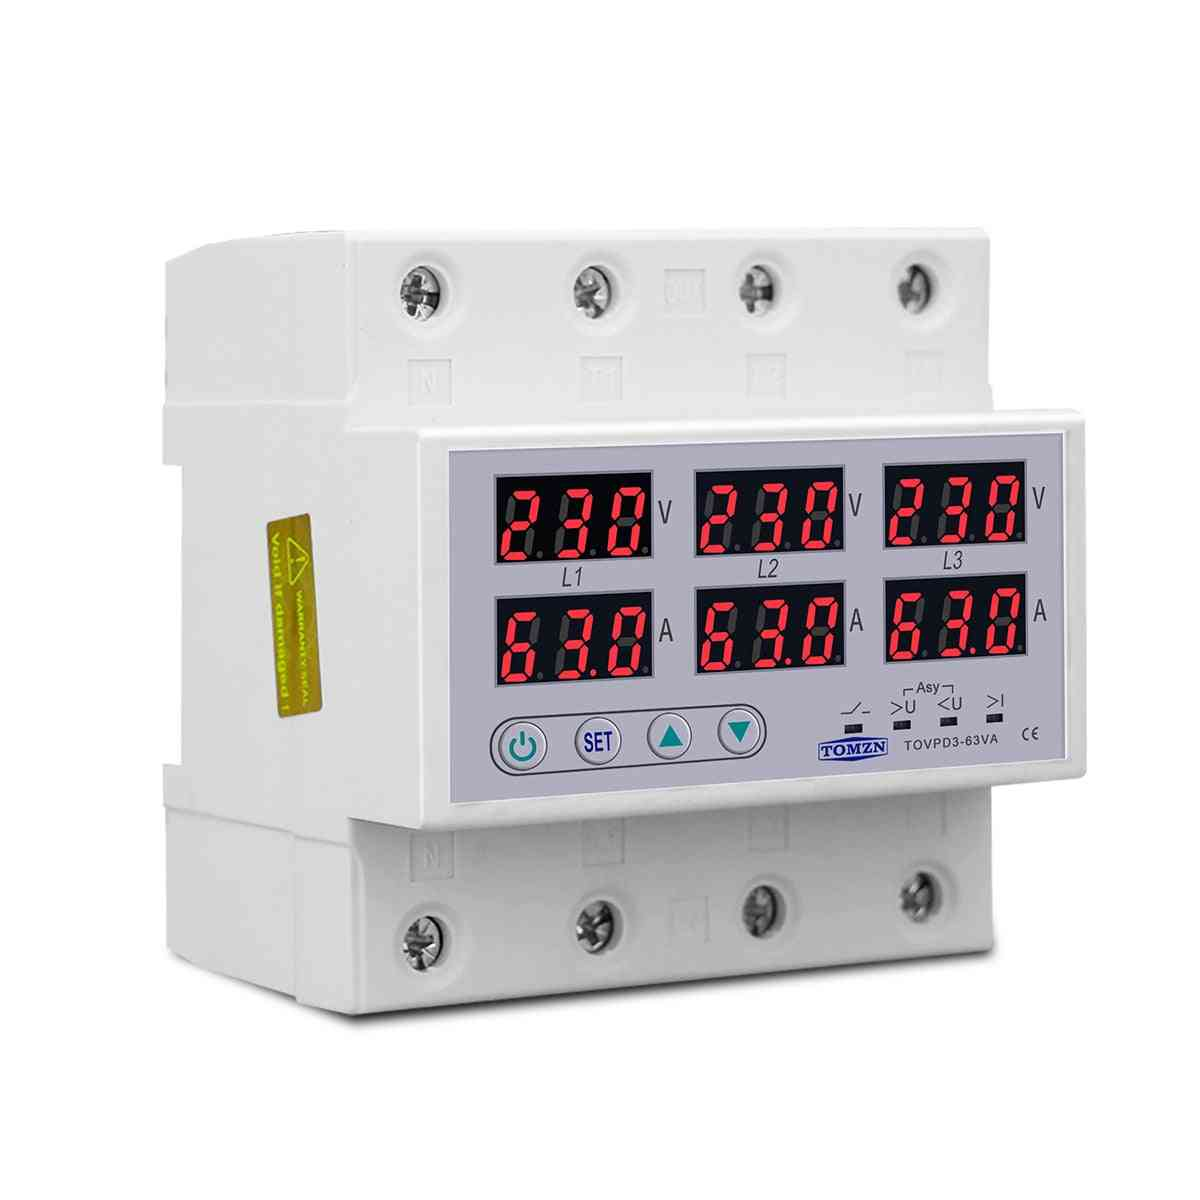 Din Rail Voltmeter Ammeter, Adjustable Over And Under Voltage, Current Limit Protection Monitor, Relays Protector